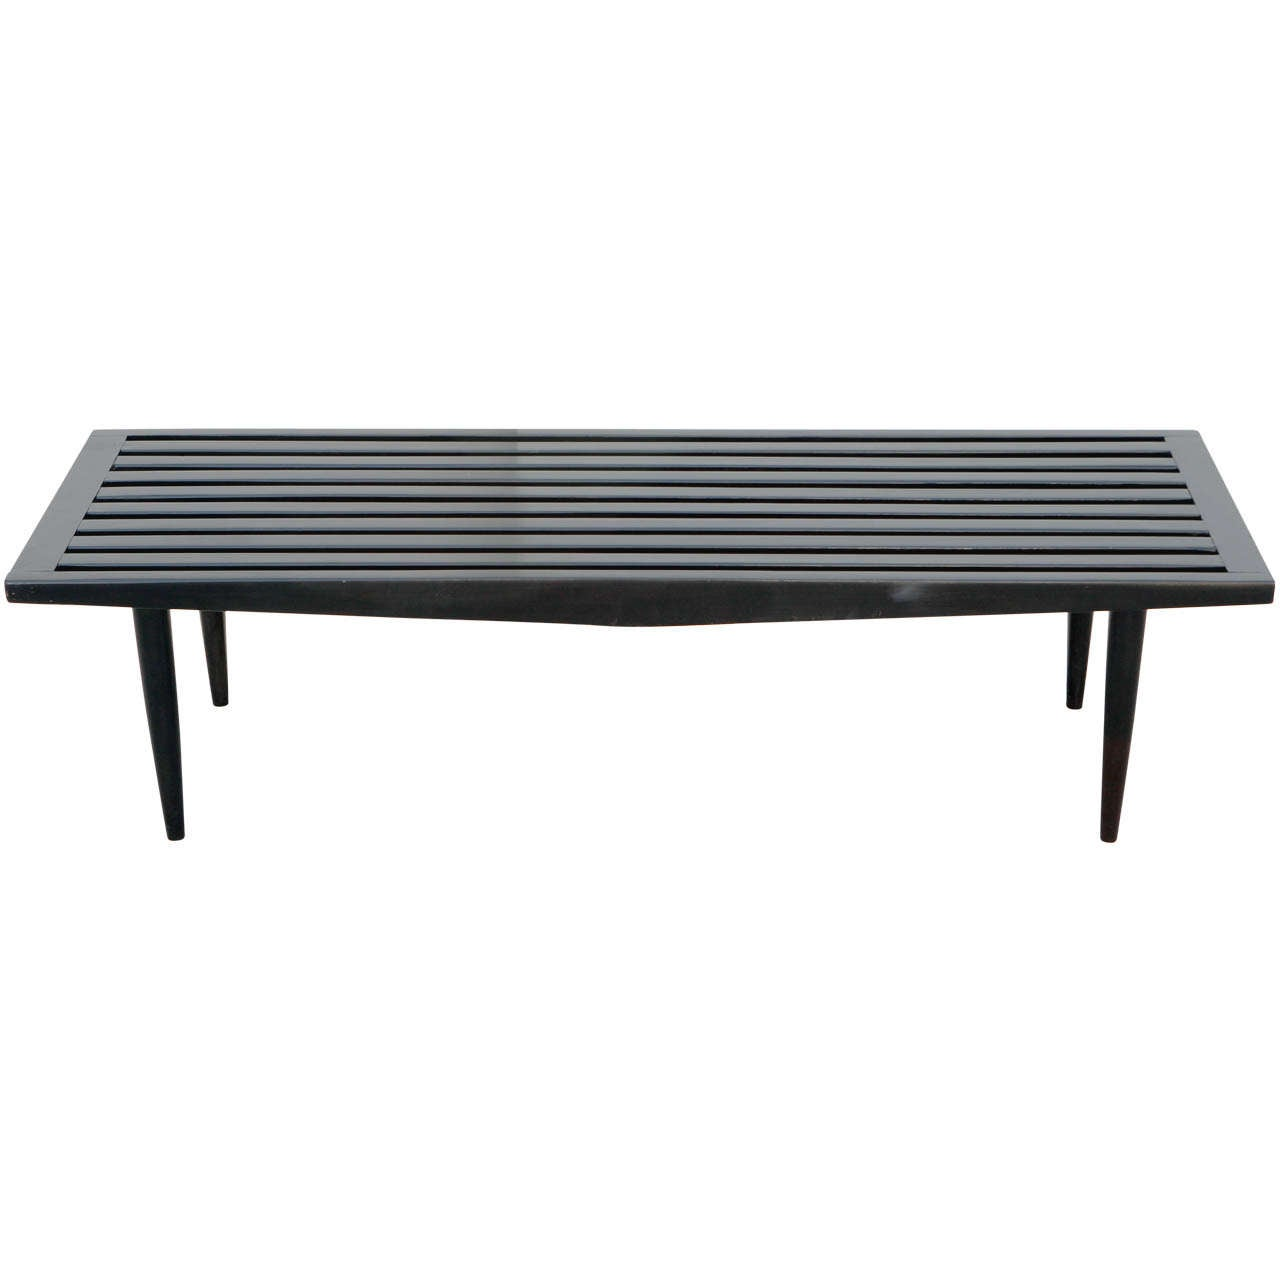 Midcentury Black Wood Slat Bench At 1stdibs